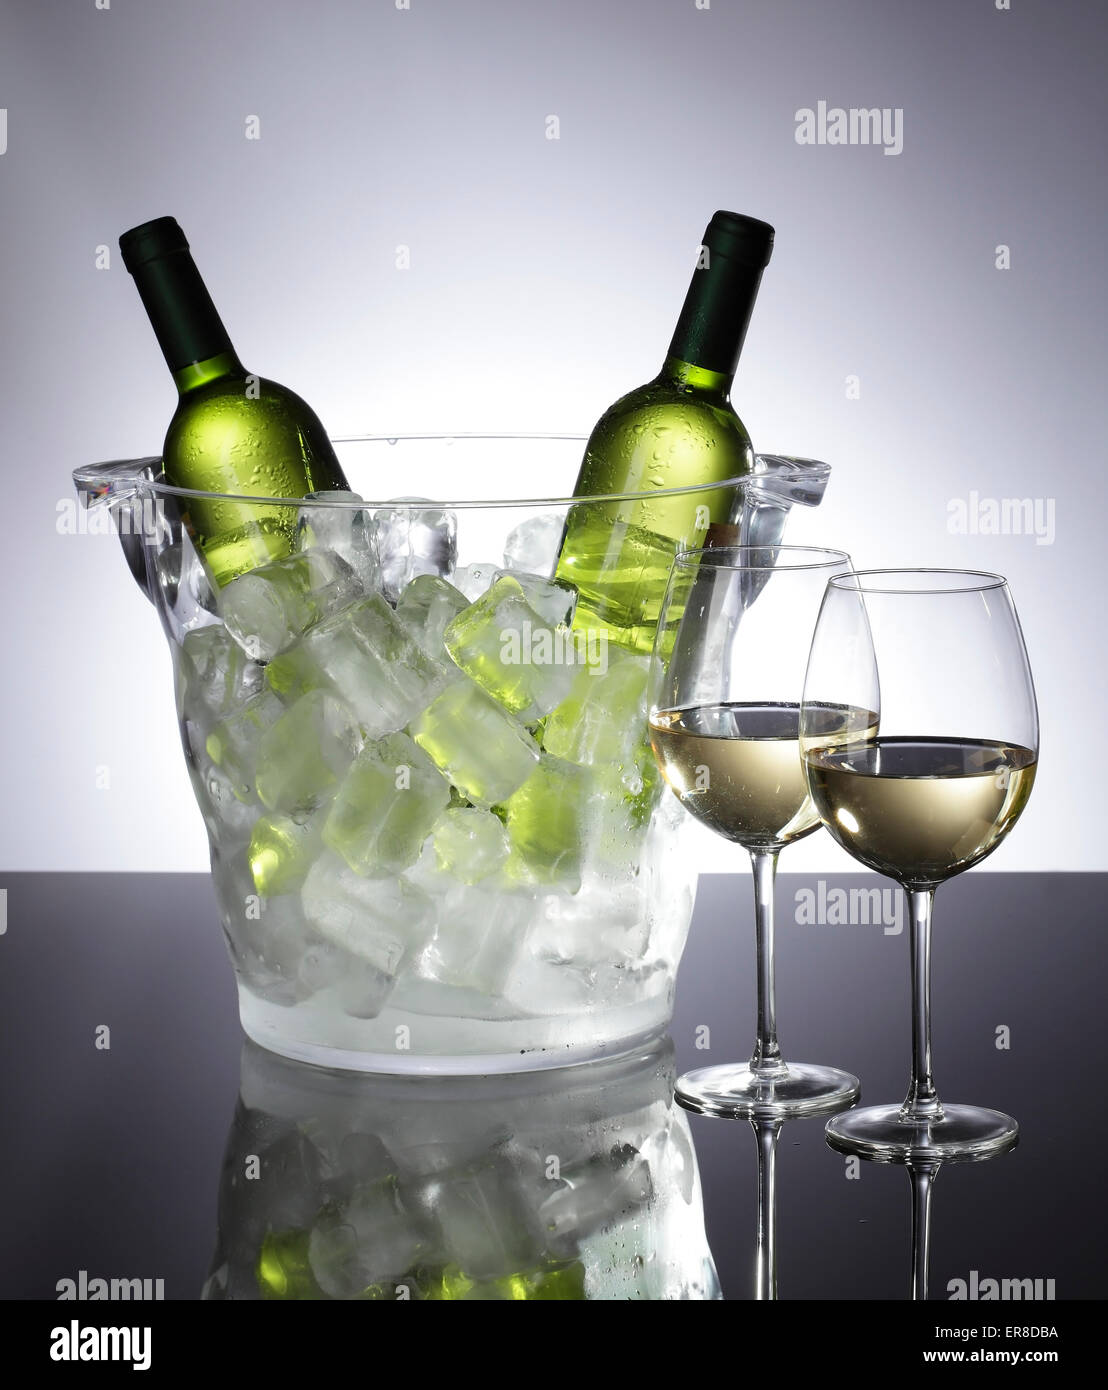 Two glasses of fresh white wine next to a cooler with ice. - Stock Image